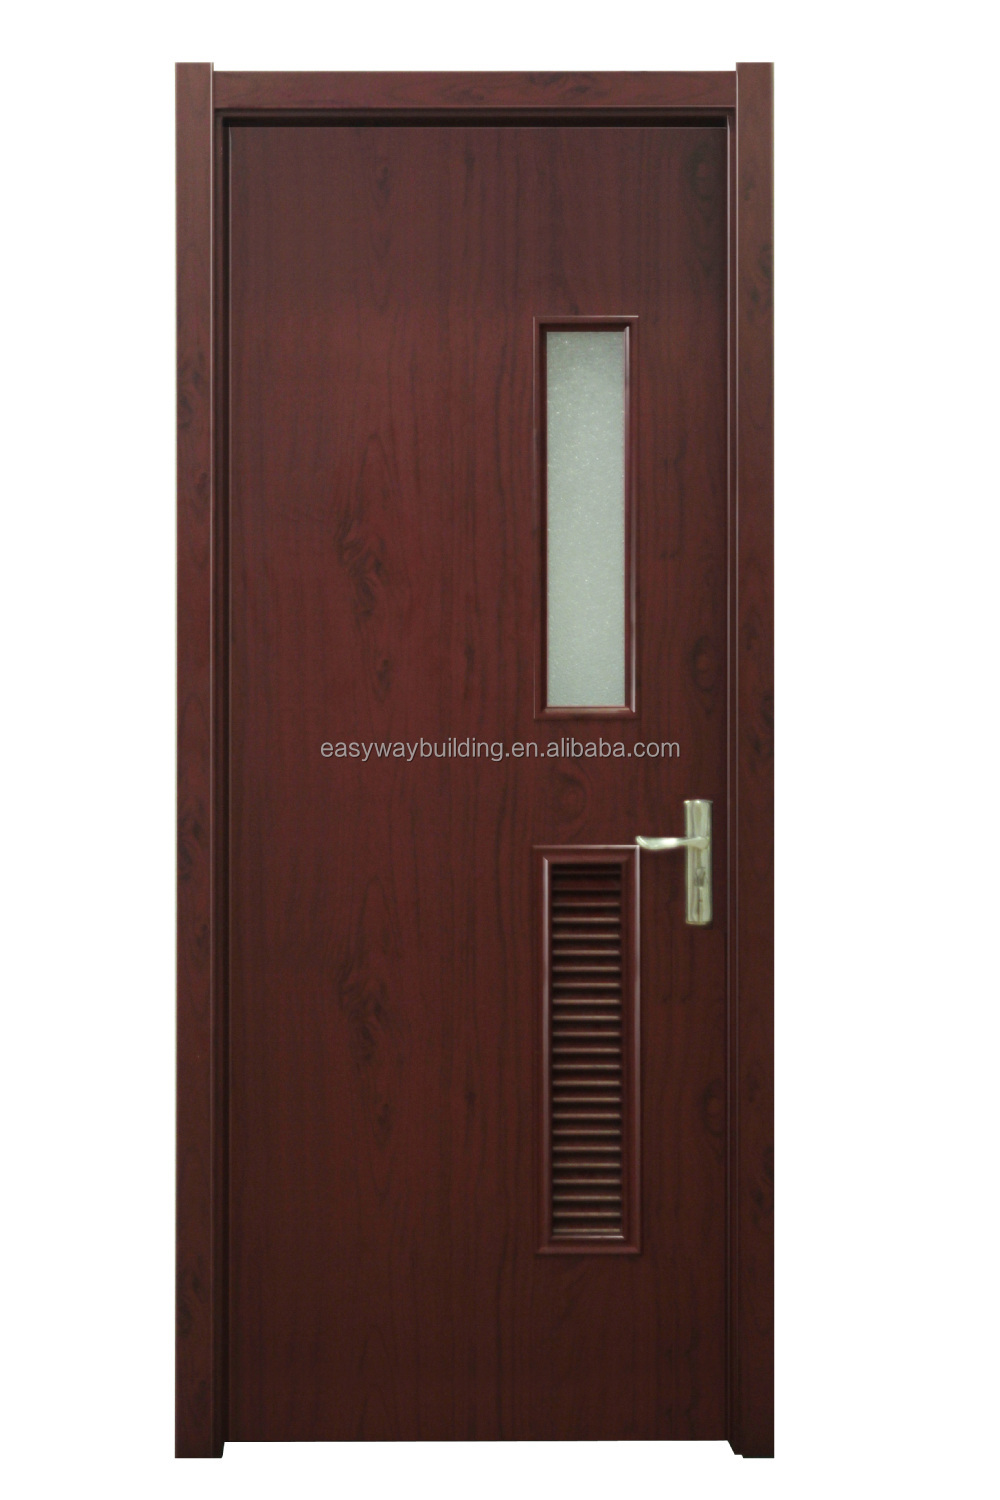 medicine cabinet plastic pine jensen doors pd rectangle door shop x in recessed louver